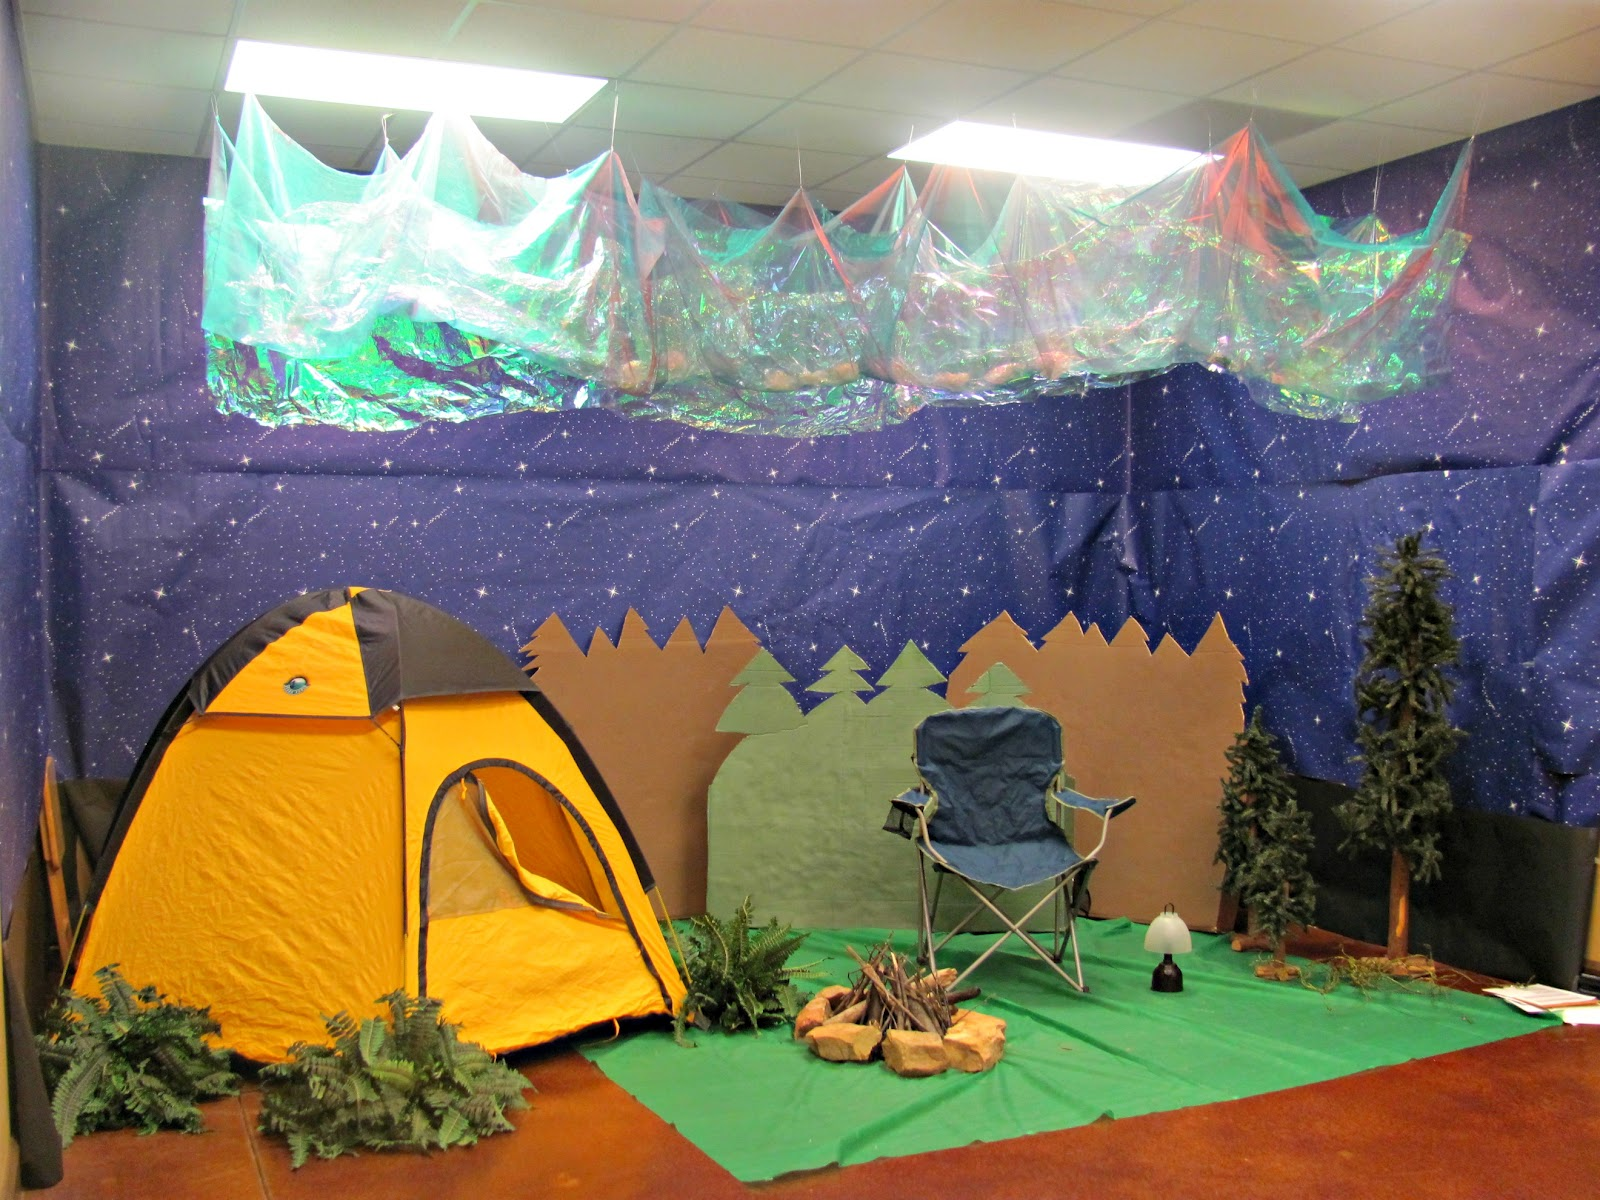 Vbs room can we light up our rocket camp zoom for Camping room decor